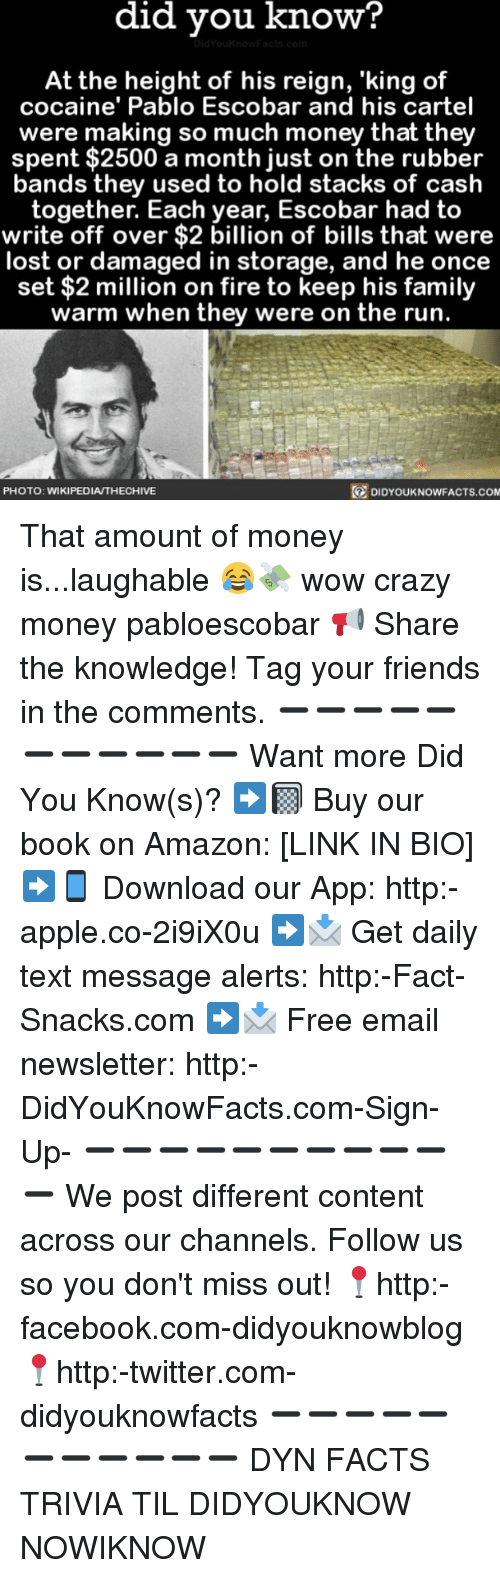 amazone: did vou know?  At the height of his reign, 'king of  cocaine' Pablo Escobar and his cartel  were making so much money that they  spent $2500 a month just on the rubber  bands they used to hold stacks of cash  together. Each year, Escobar had to  write off over $2 billion of bills that were  lost or damaged in storage, and he once  set $2 million on fire to keep his family  warm when they were on the run.  PHOTO: WIKIPEDIA/THECHIVE  DIDYOUKNOWFACTS.co That amount of money is...laughable 😂💸 wow crazy money pabloescobar 📢 Share the knowledge! Tag your friends in the comments. ➖➖➖➖➖➖➖➖➖➖➖ Want more Did You Know(s)? ➡📓 Buy our book on Amazon: [LINK IN BIO] ➡📱 Download our App: http:-apple.co-2i9iX0u ➡📩 Get daily text message alerts: http:-Fact-Snacks.com ➡📩 Free email newsletter: http:-DidYouKnowFacts.com-Sign-Up- ➖➖➖➖➖➖➖➖➖➖➖ We post different content across our channels. Follow us so you don't miss out! 📍http:-facebook.com-didyouknowblog 📍http:-twitter.com-didyouknowfacts ➖➖➖➖➖➖➖➖➖➖➖ DYN FACTS TRIVIA TIL DIDYOUKNOW NOWIKNOW